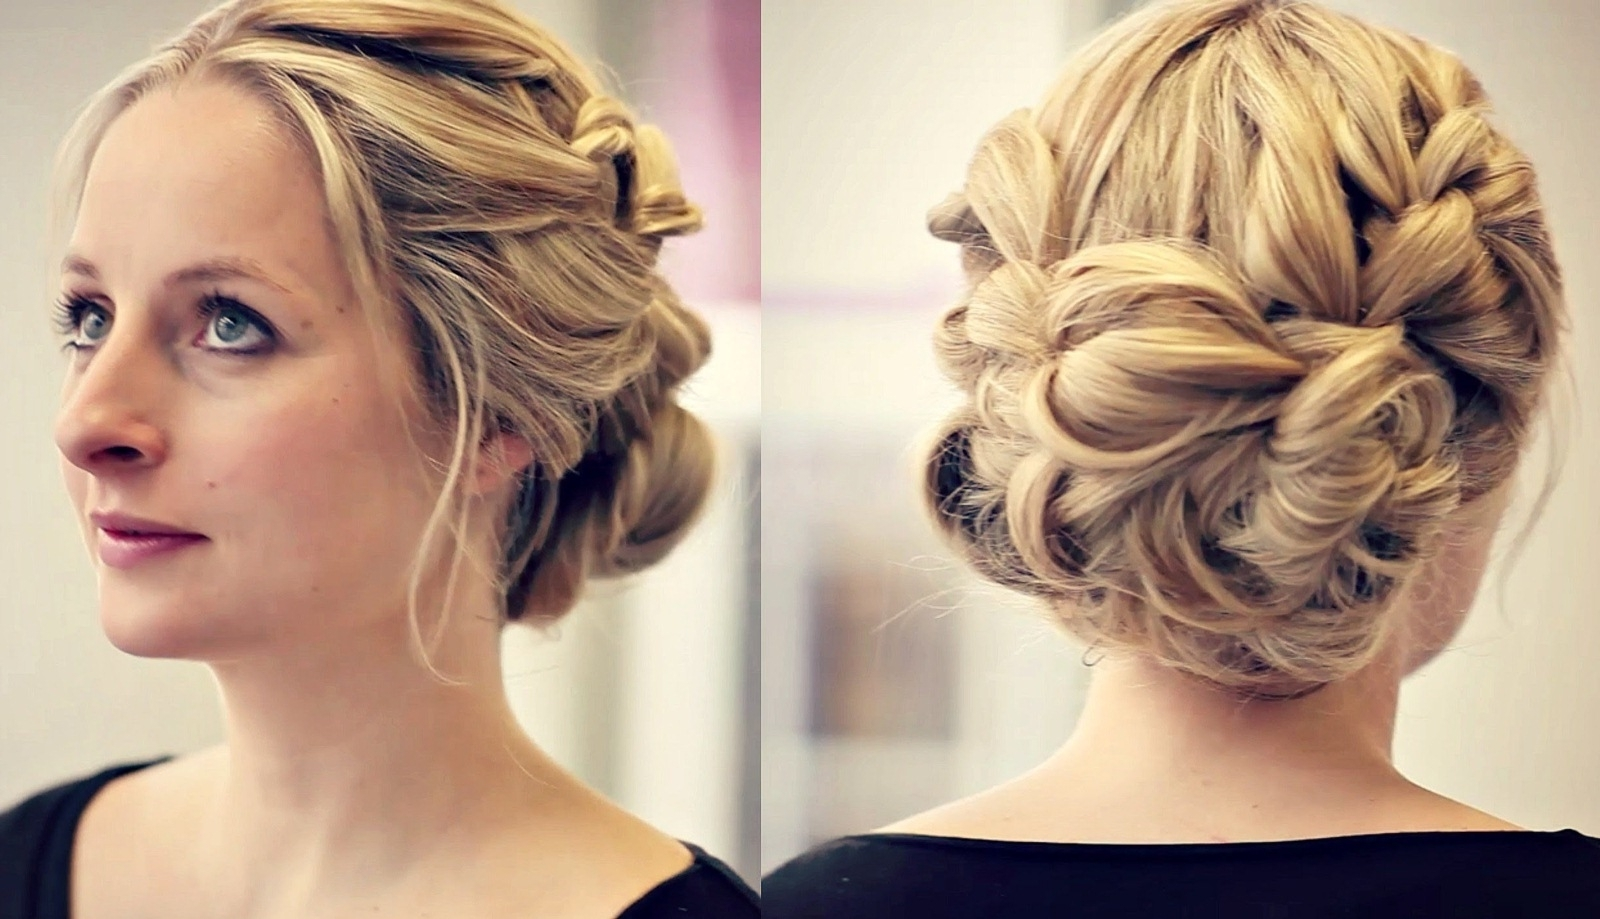 Bridal Hairstyles For Short Hair Updos | Trend Hairstyle And Haircut Regarding Bridesmaid Hairstyles Updos For Short Hair (View 3 of 15)